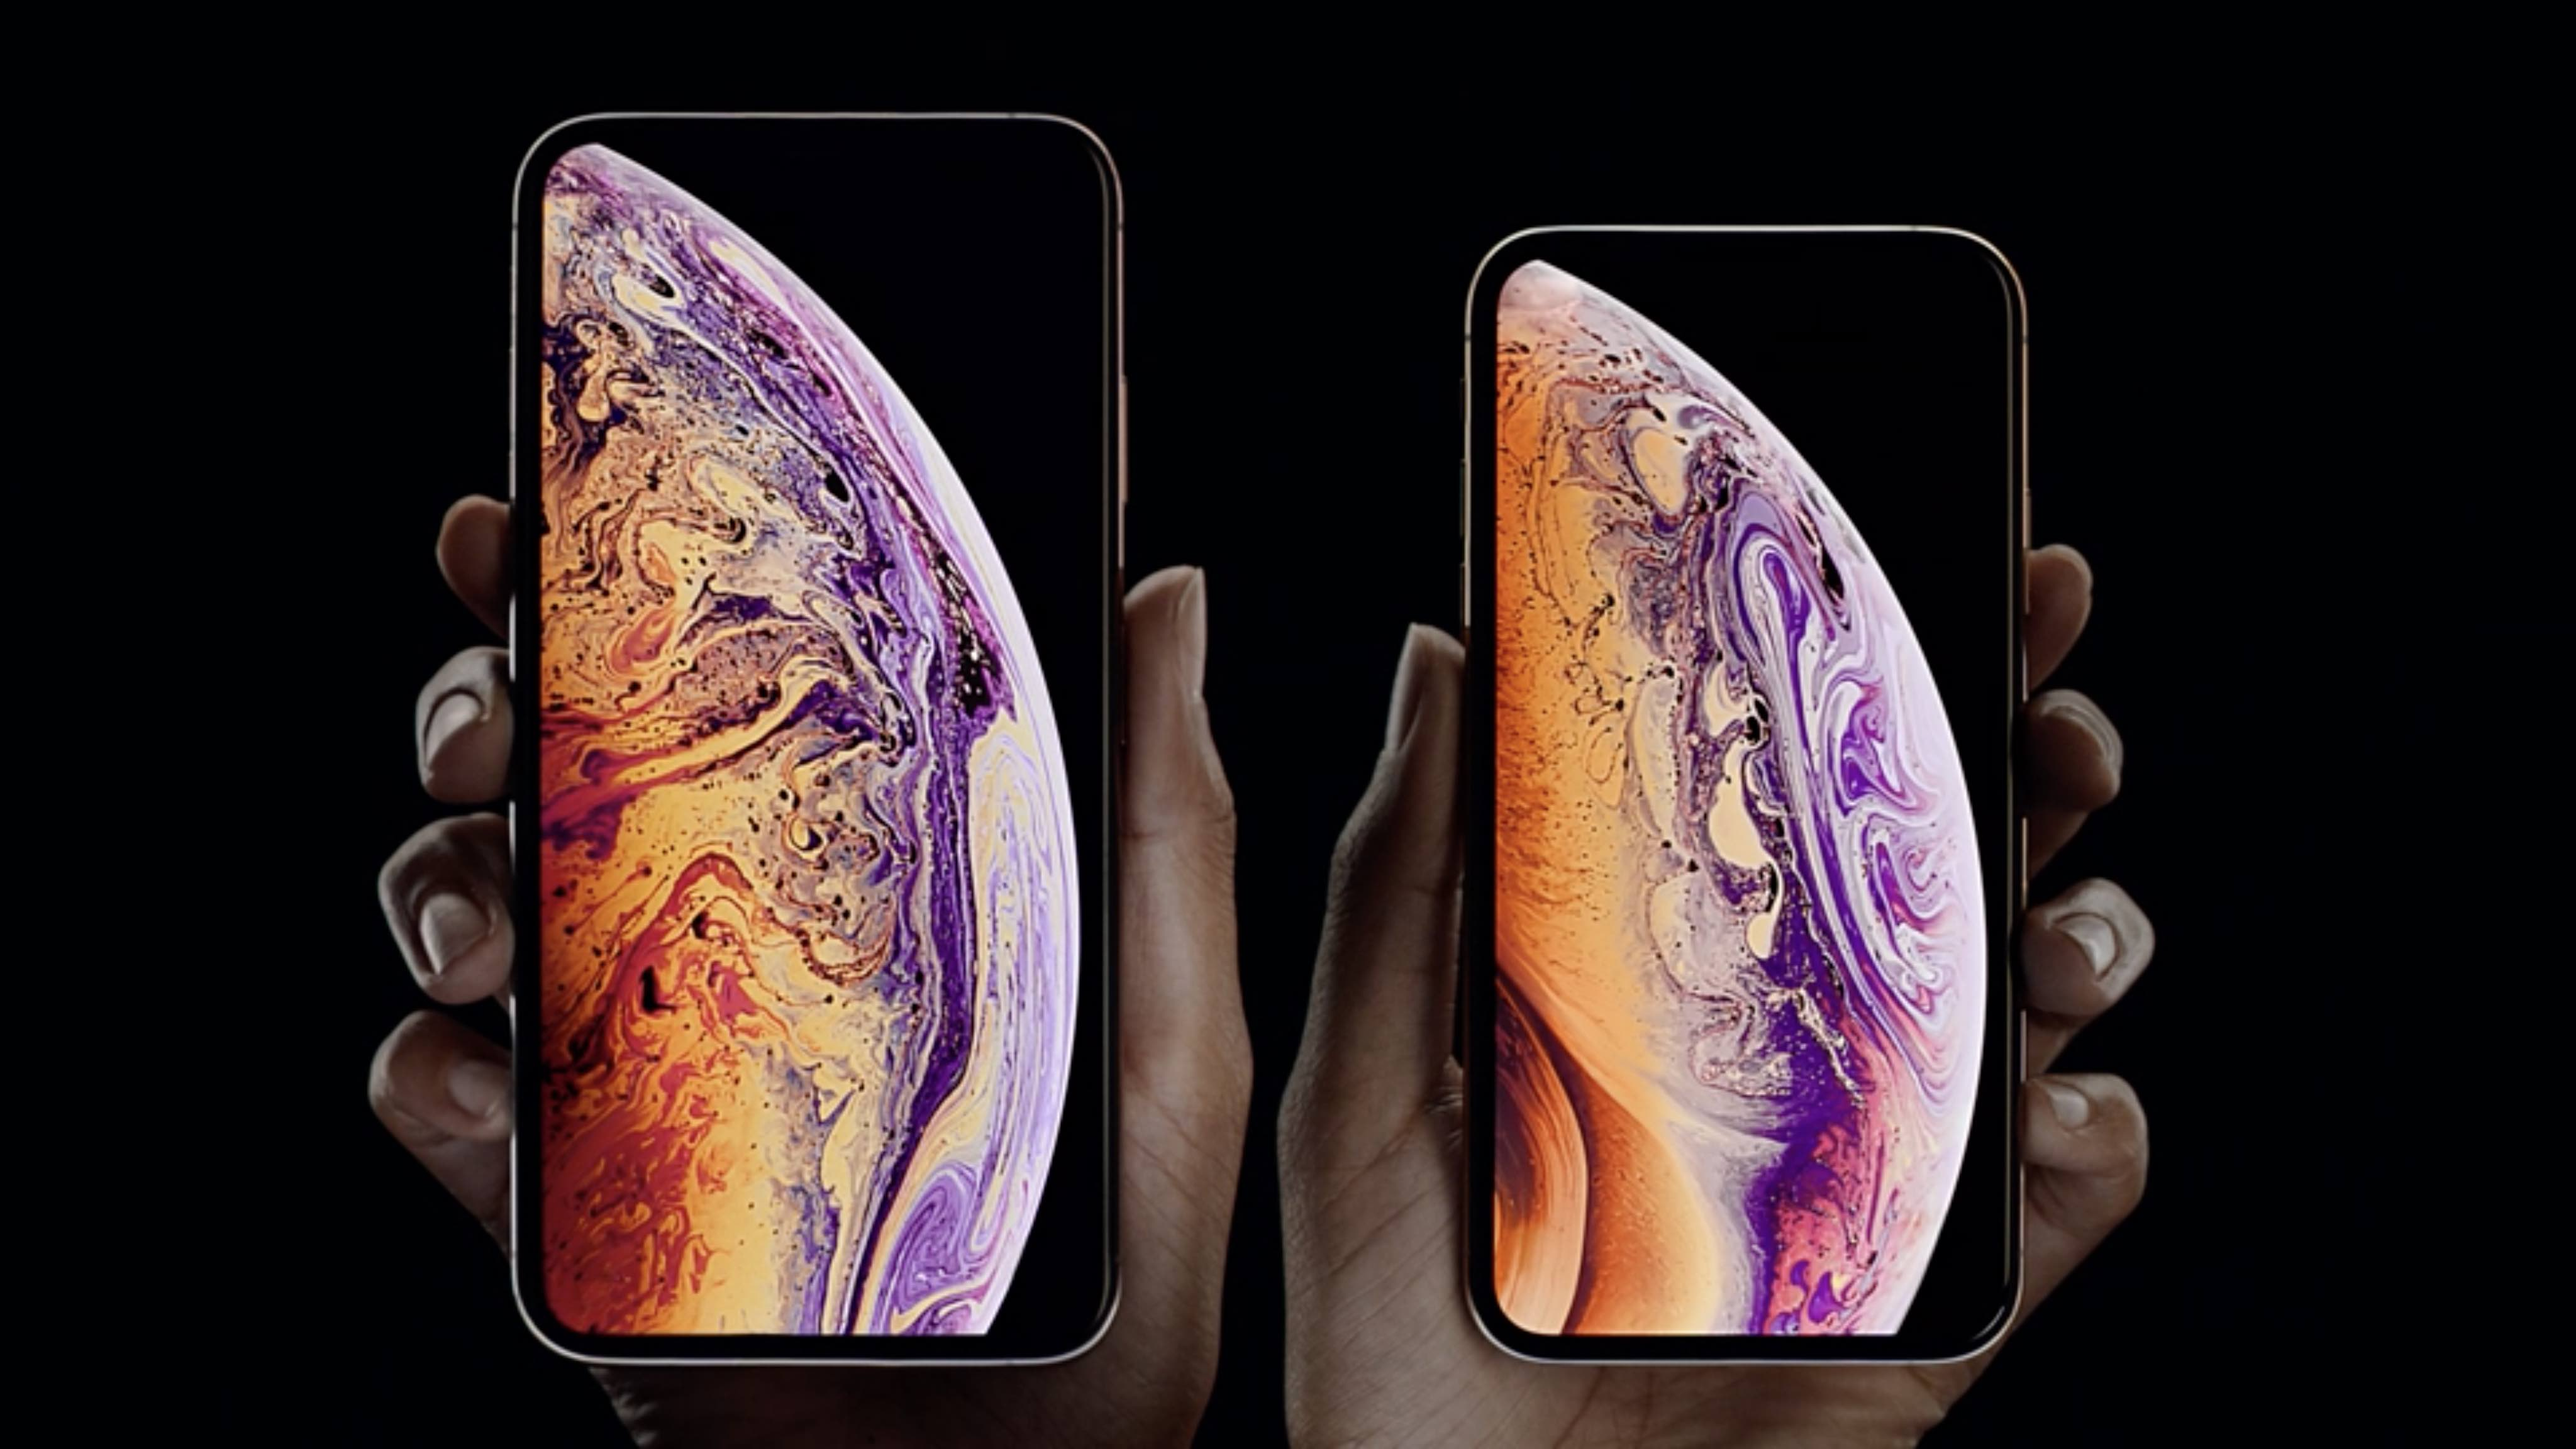 kuo iphone xs max considerably more popular than xs 256gb model is top pick